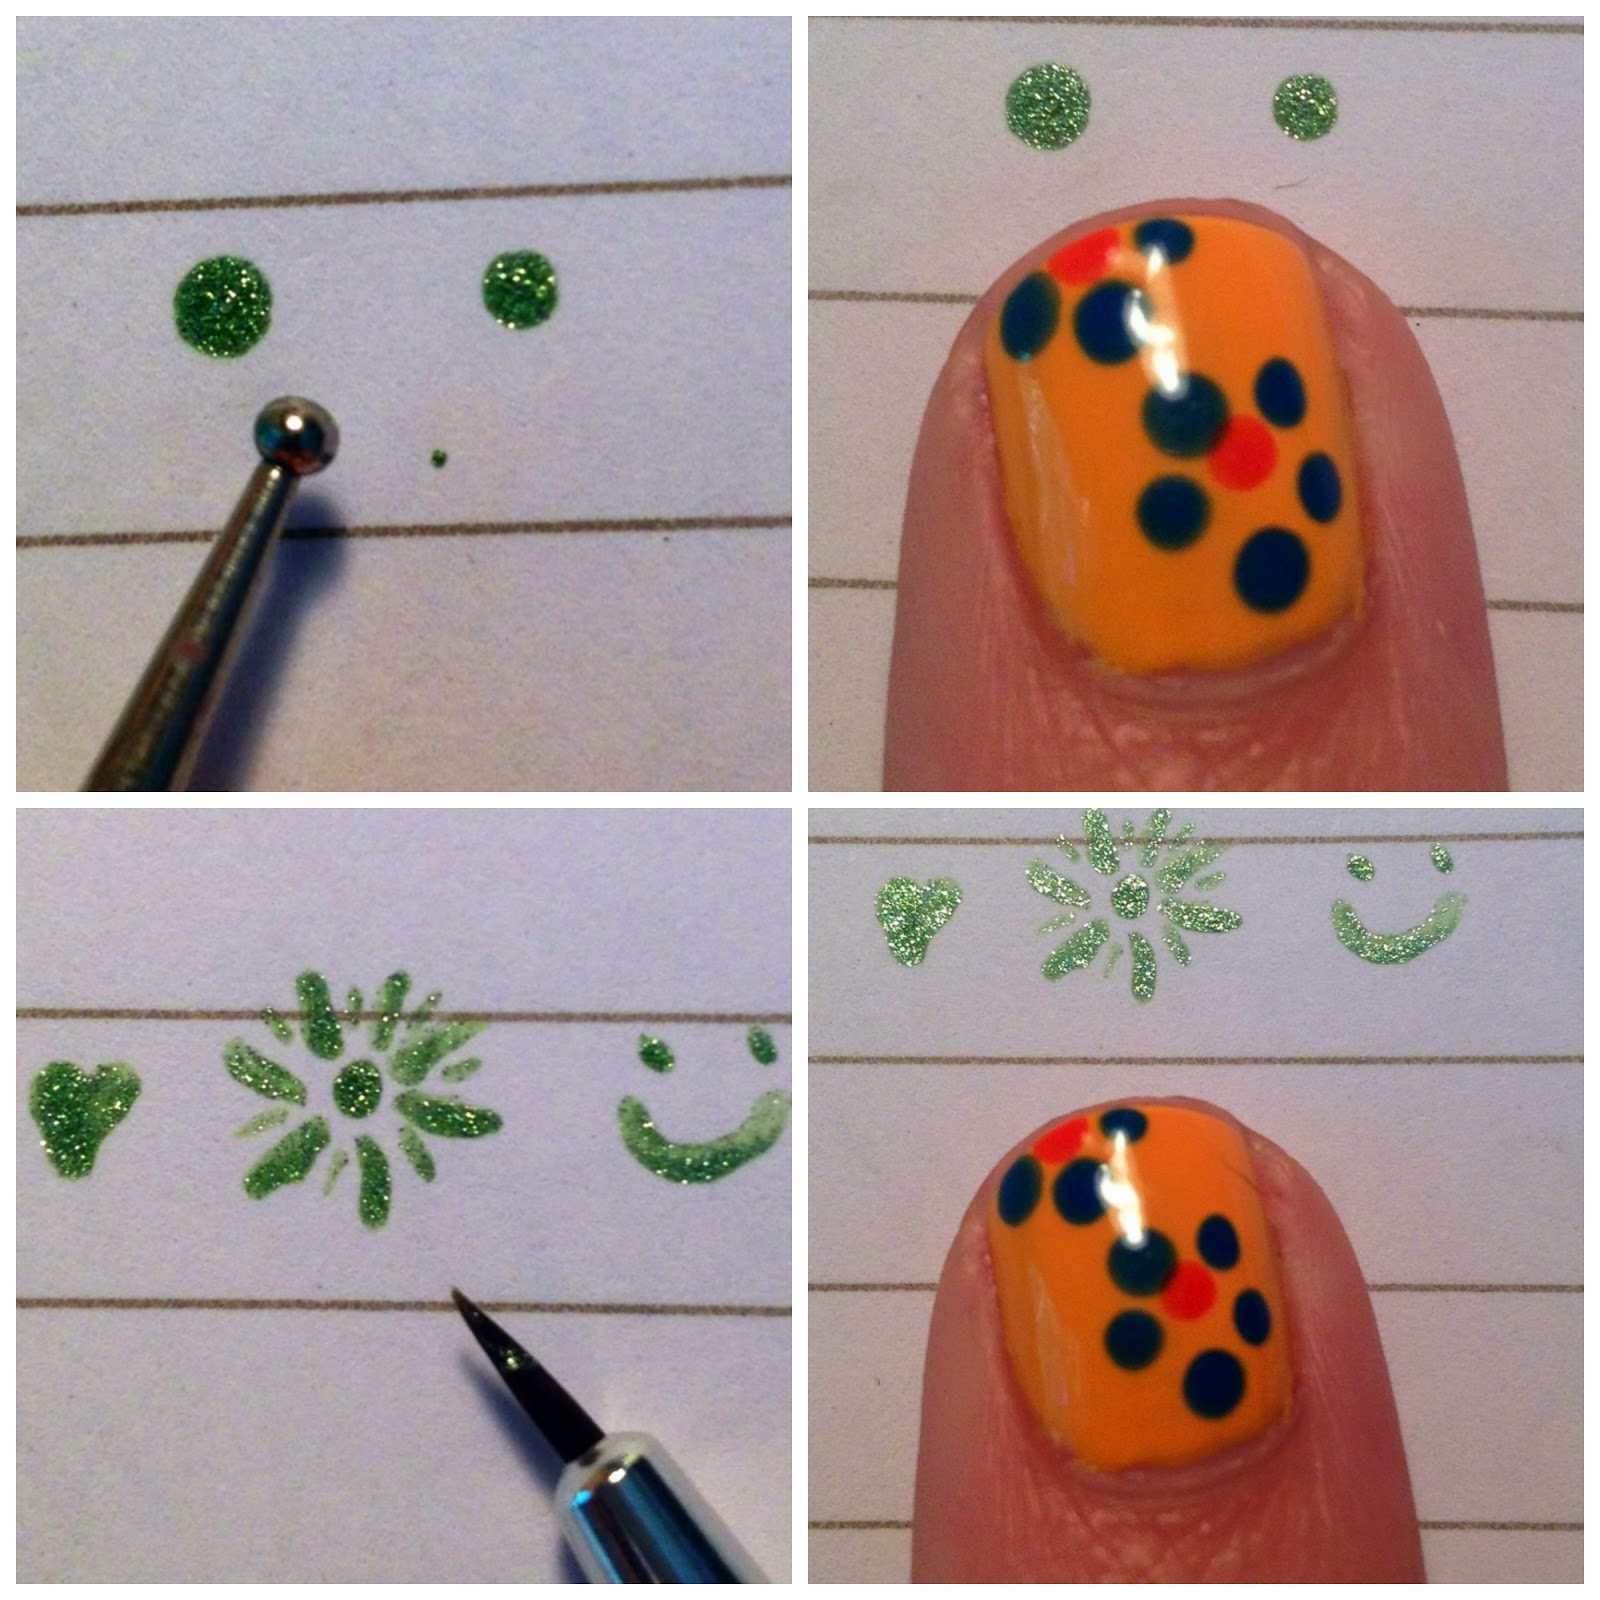 Amazing Nail Art Tools Review Photo - Nail Art Ideas - morihati.com